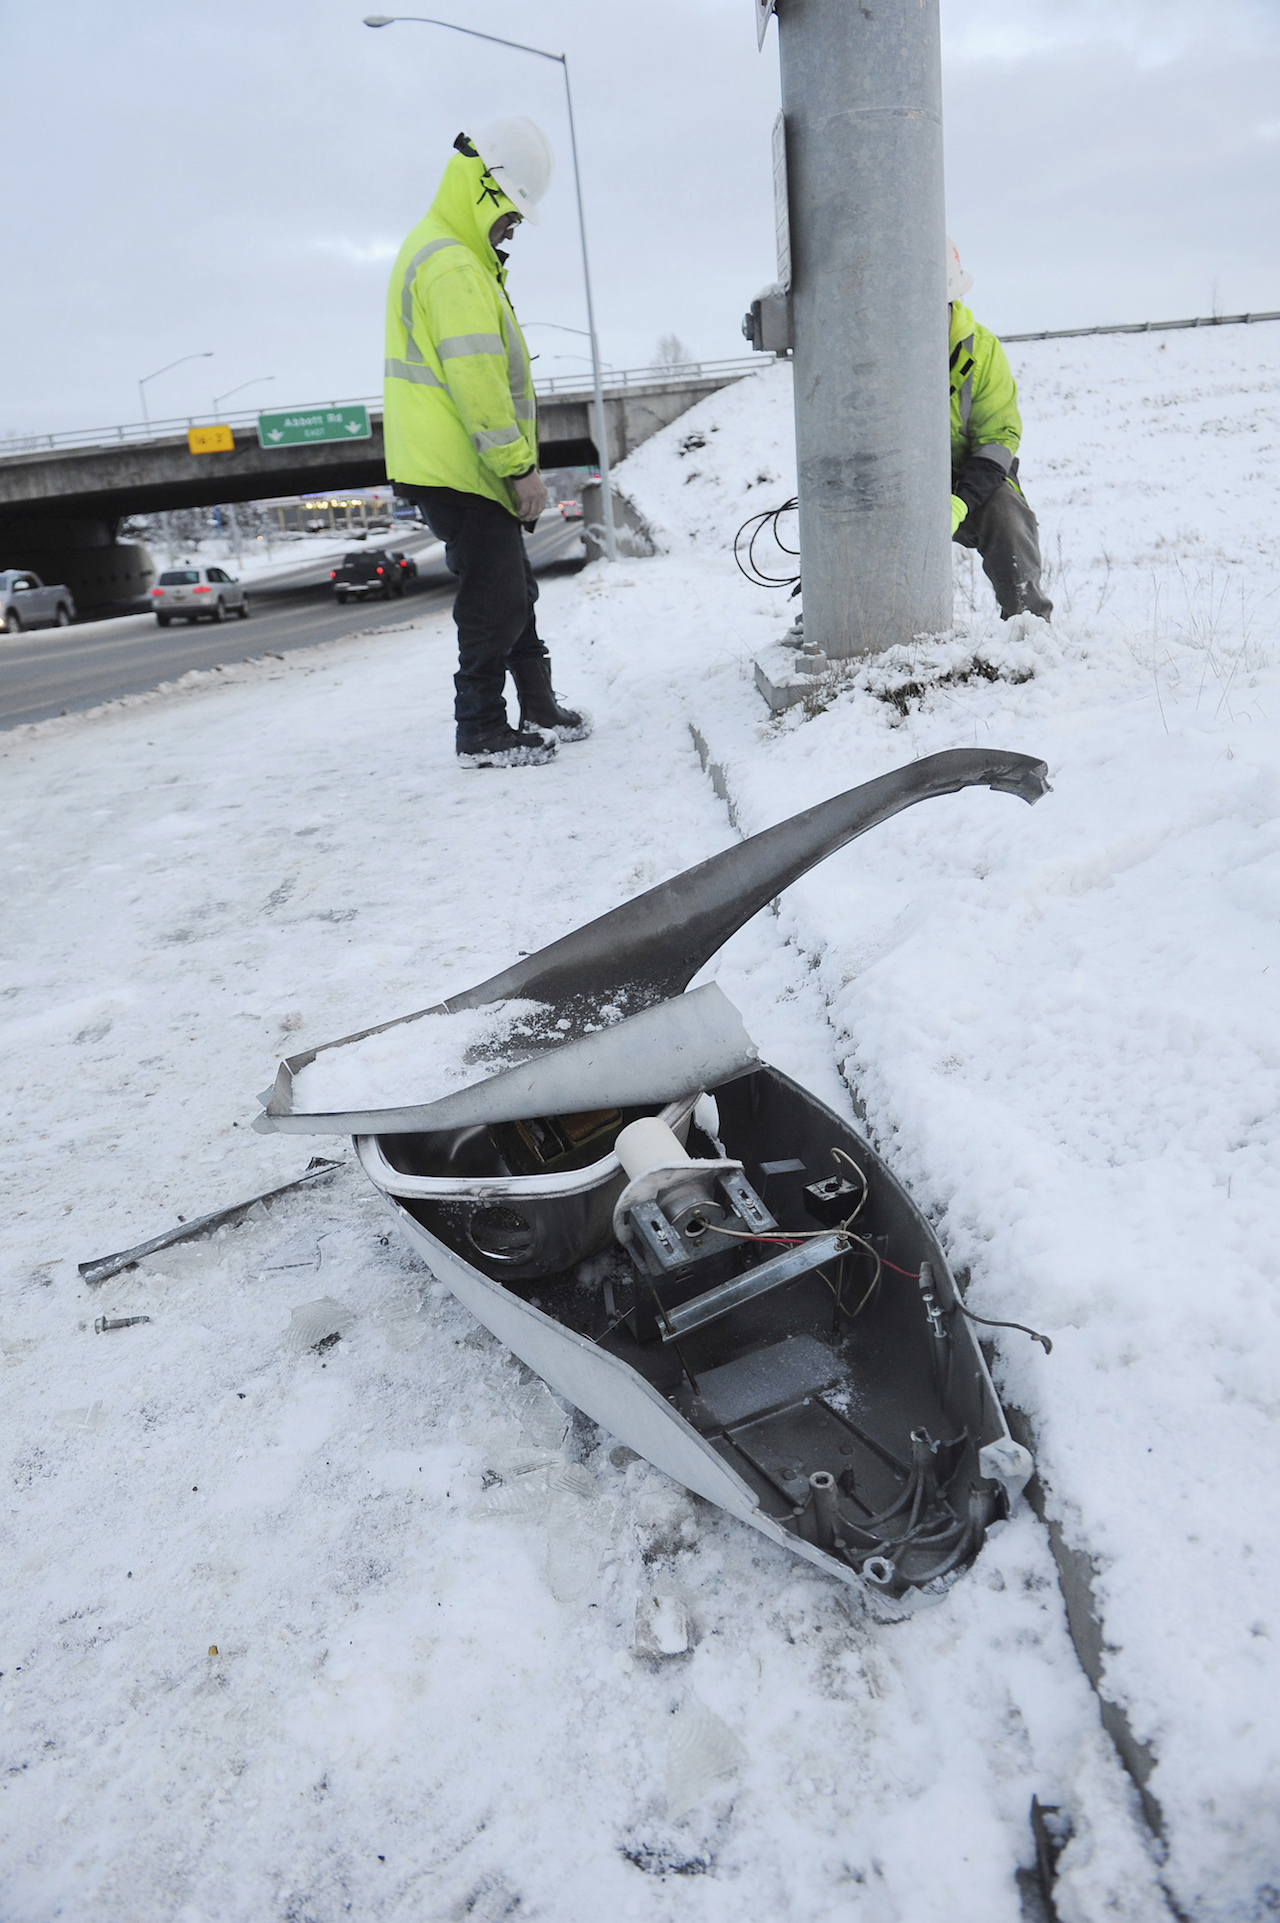 "<div class=""meta image-caption""><div class=""origin-logo origin-image ap""><span>AP</span></div><span class=""caption-text"">Energy Services North employees prepare to replace a fallen street light in Anchorage, one of the effects of the morning's earthquake which caused damage to the local area. (AP Photo/Mike Dinneen)</span></div>"